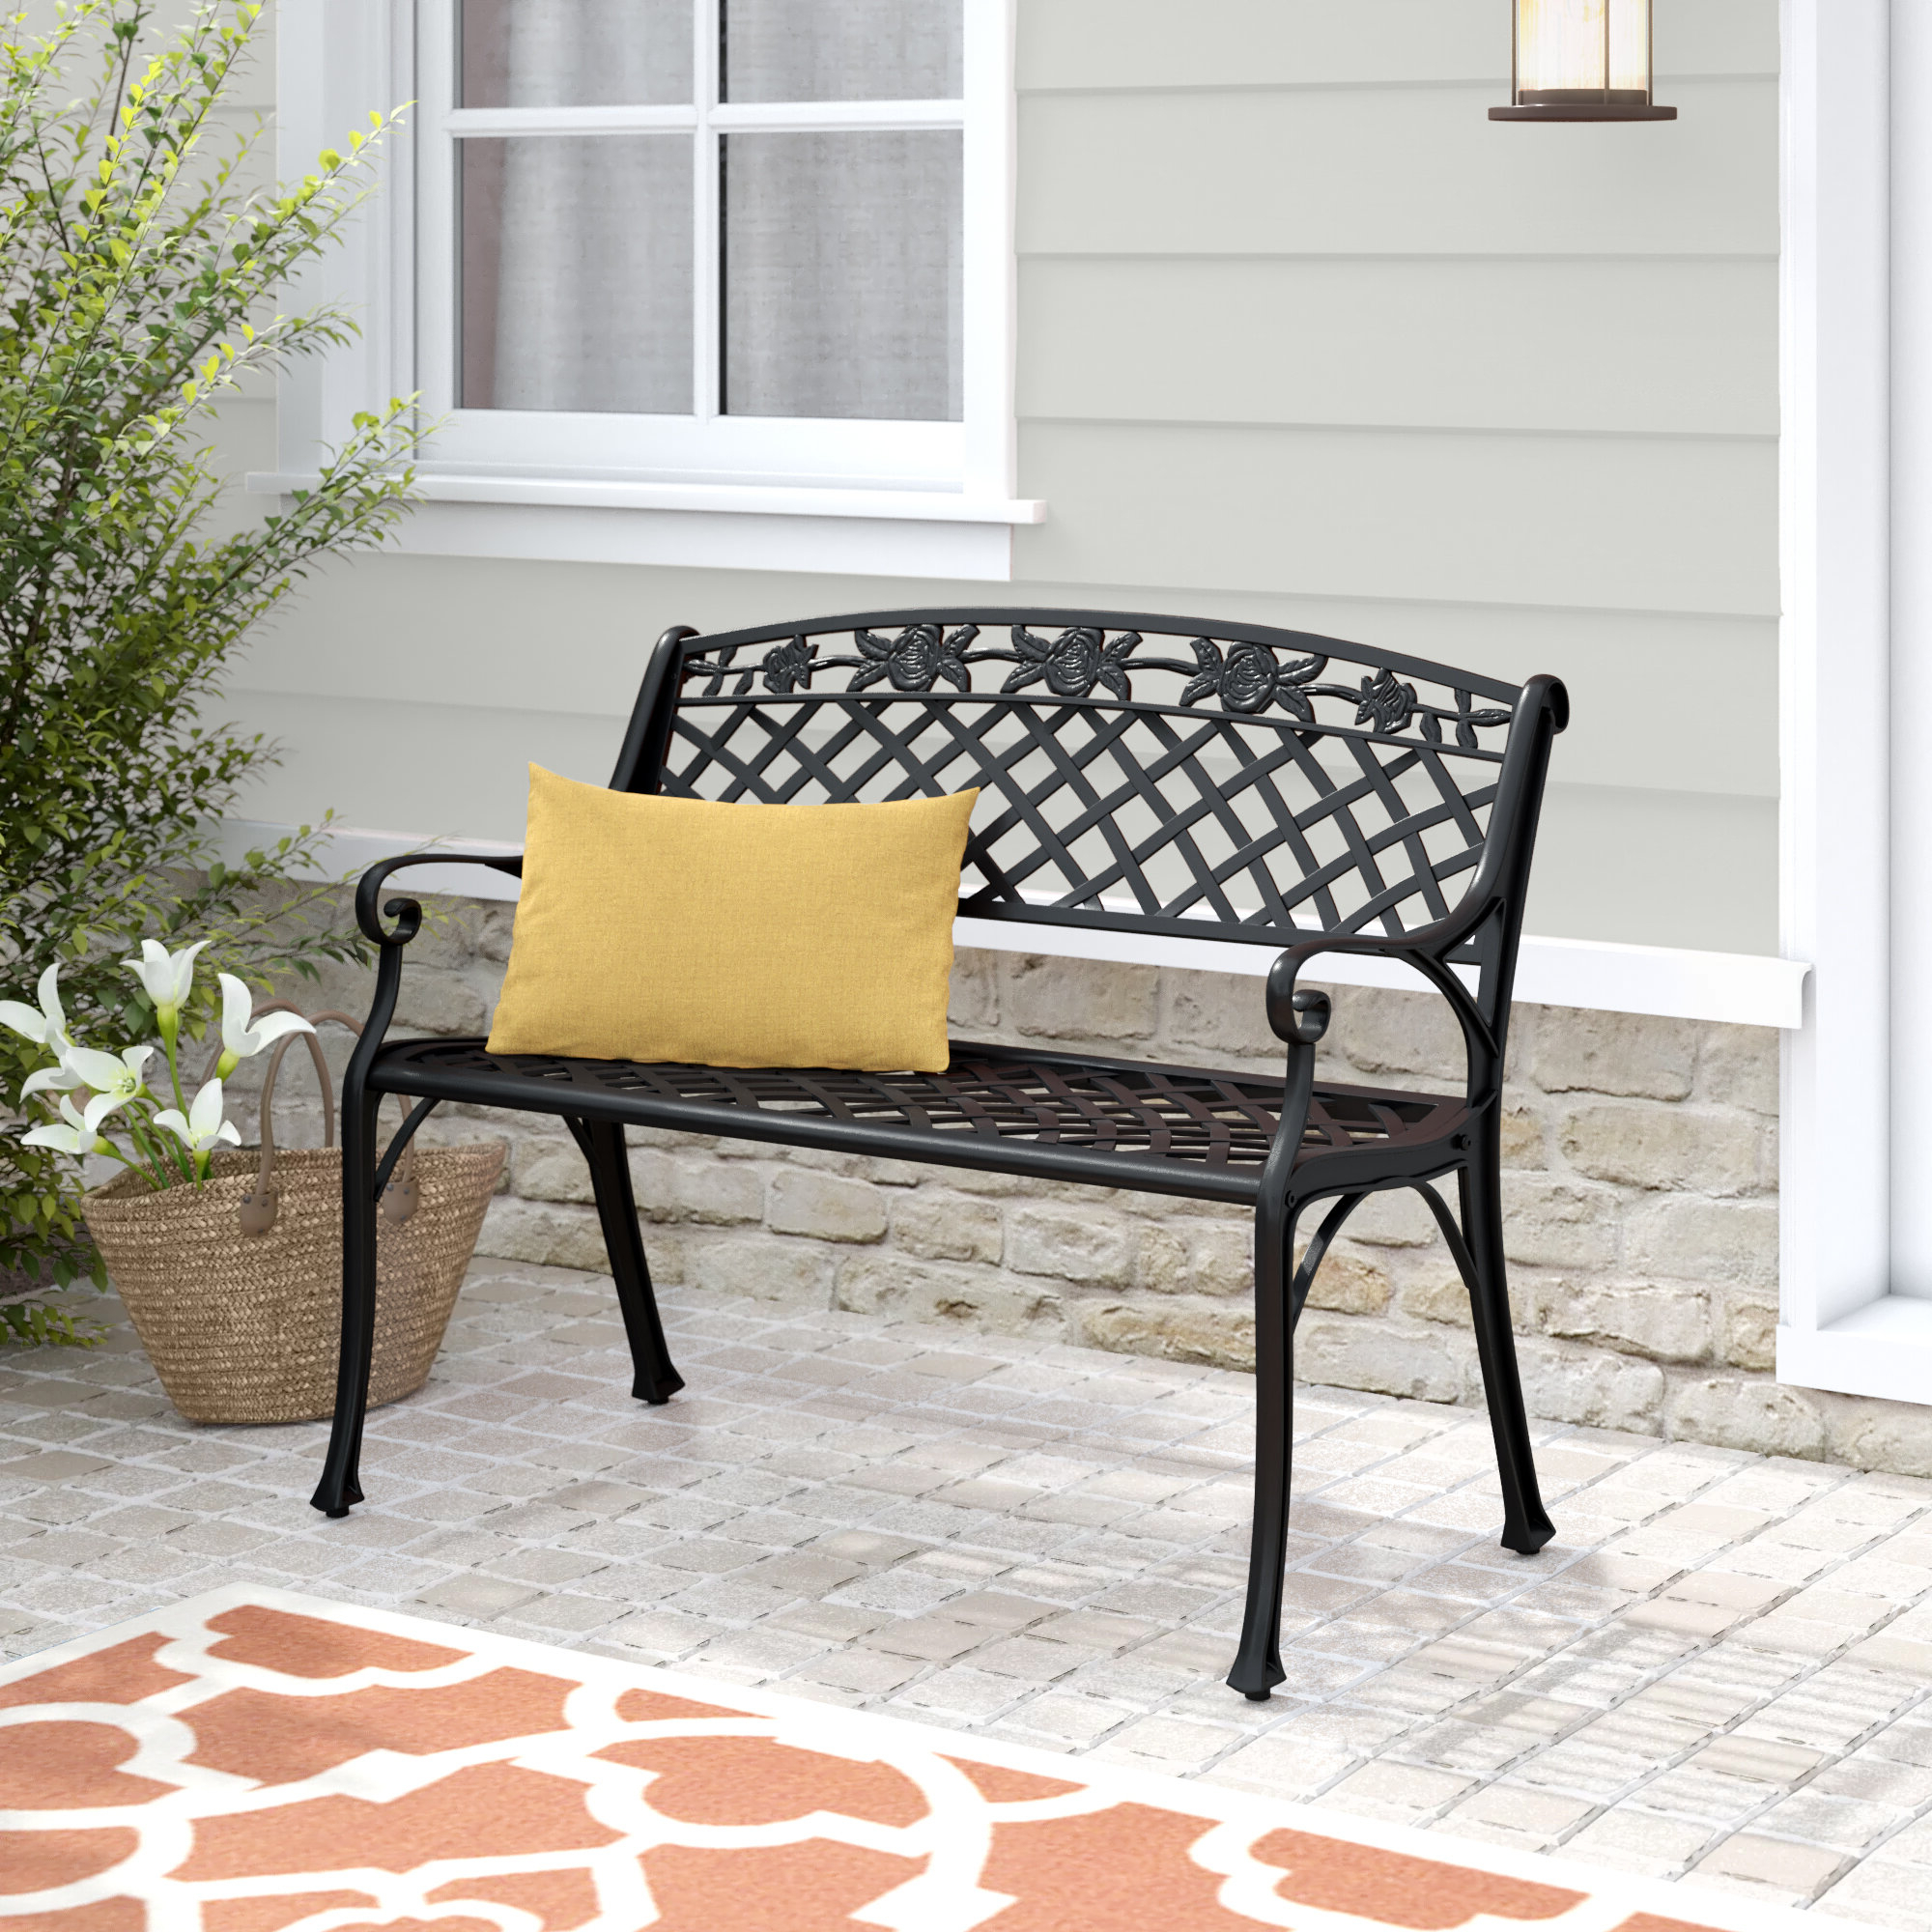 Preferred Hollander Metal Garden Bench Within Norrie Metal Garden Benches (View 14 of 30)